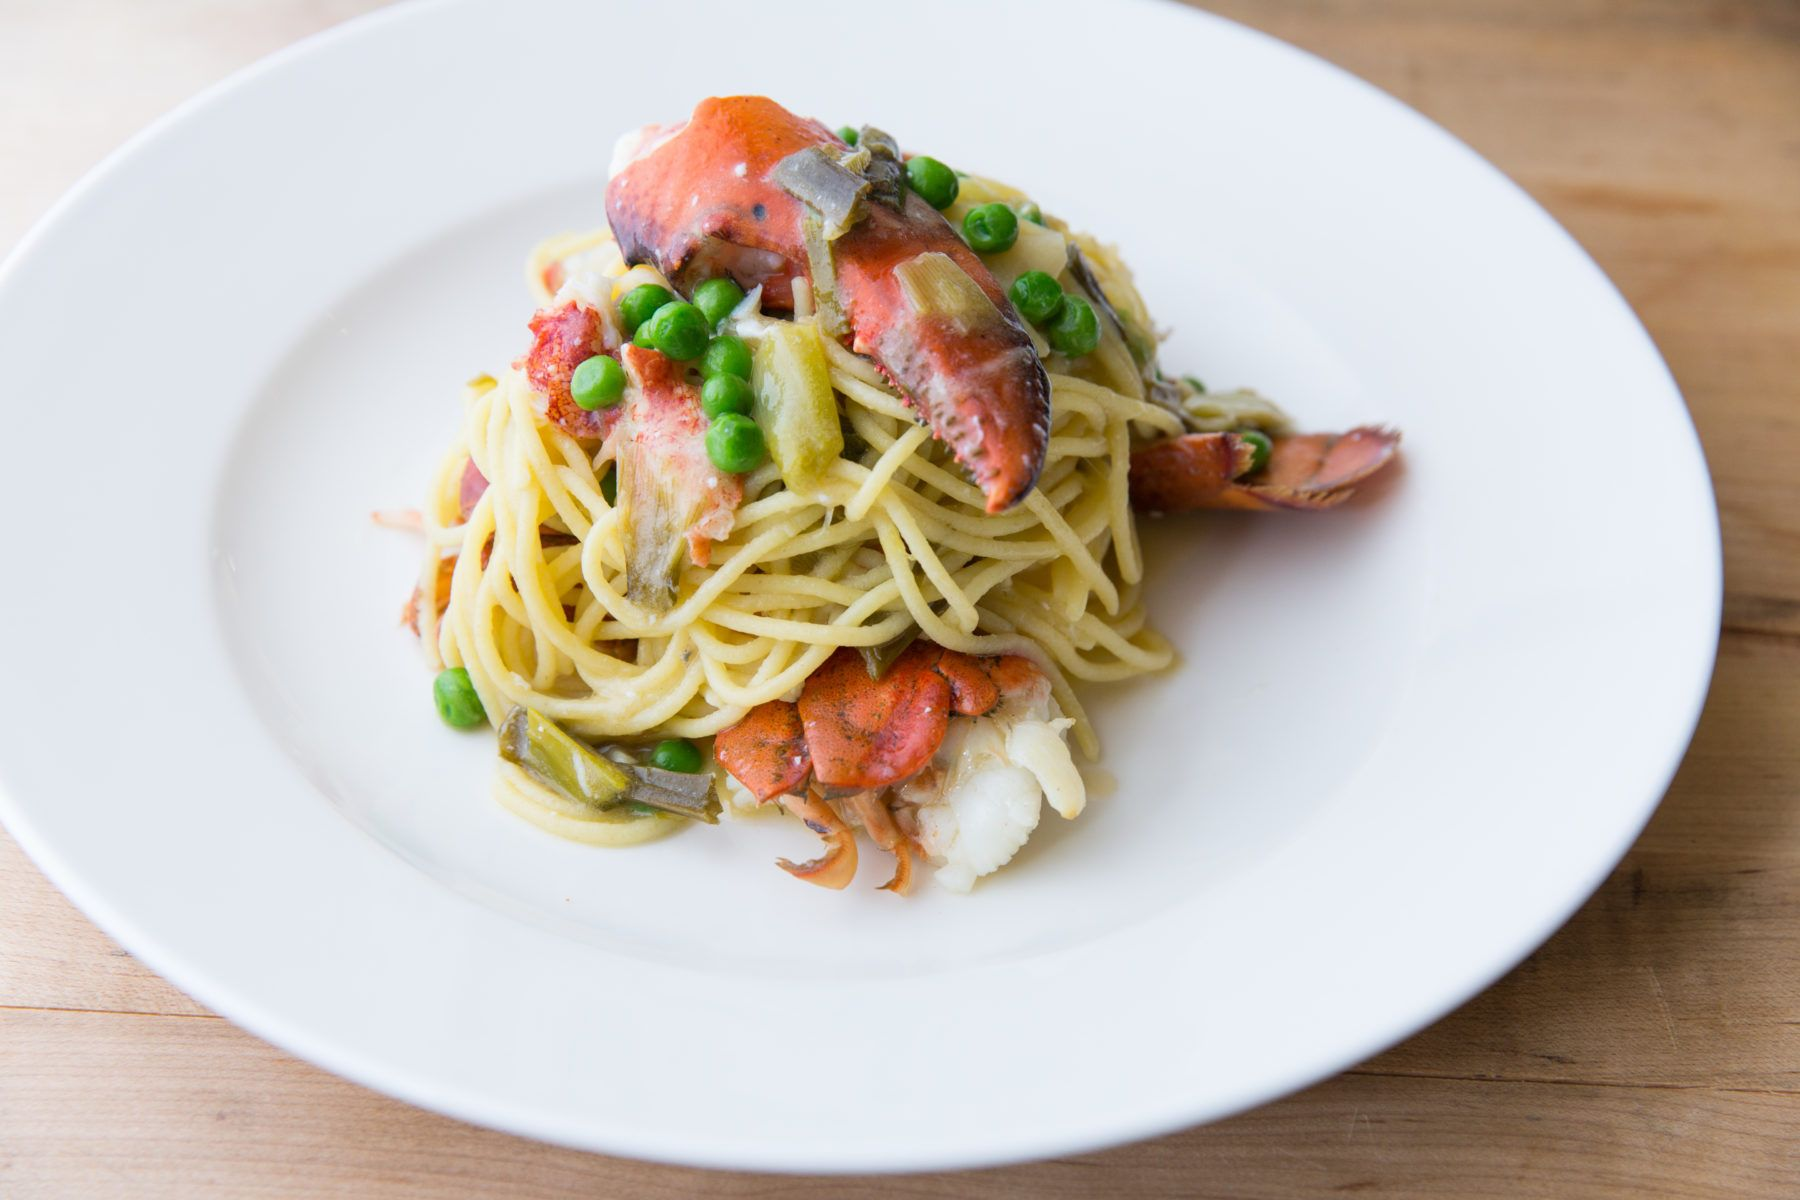 Lobster Spaghetti with Peas on a plate